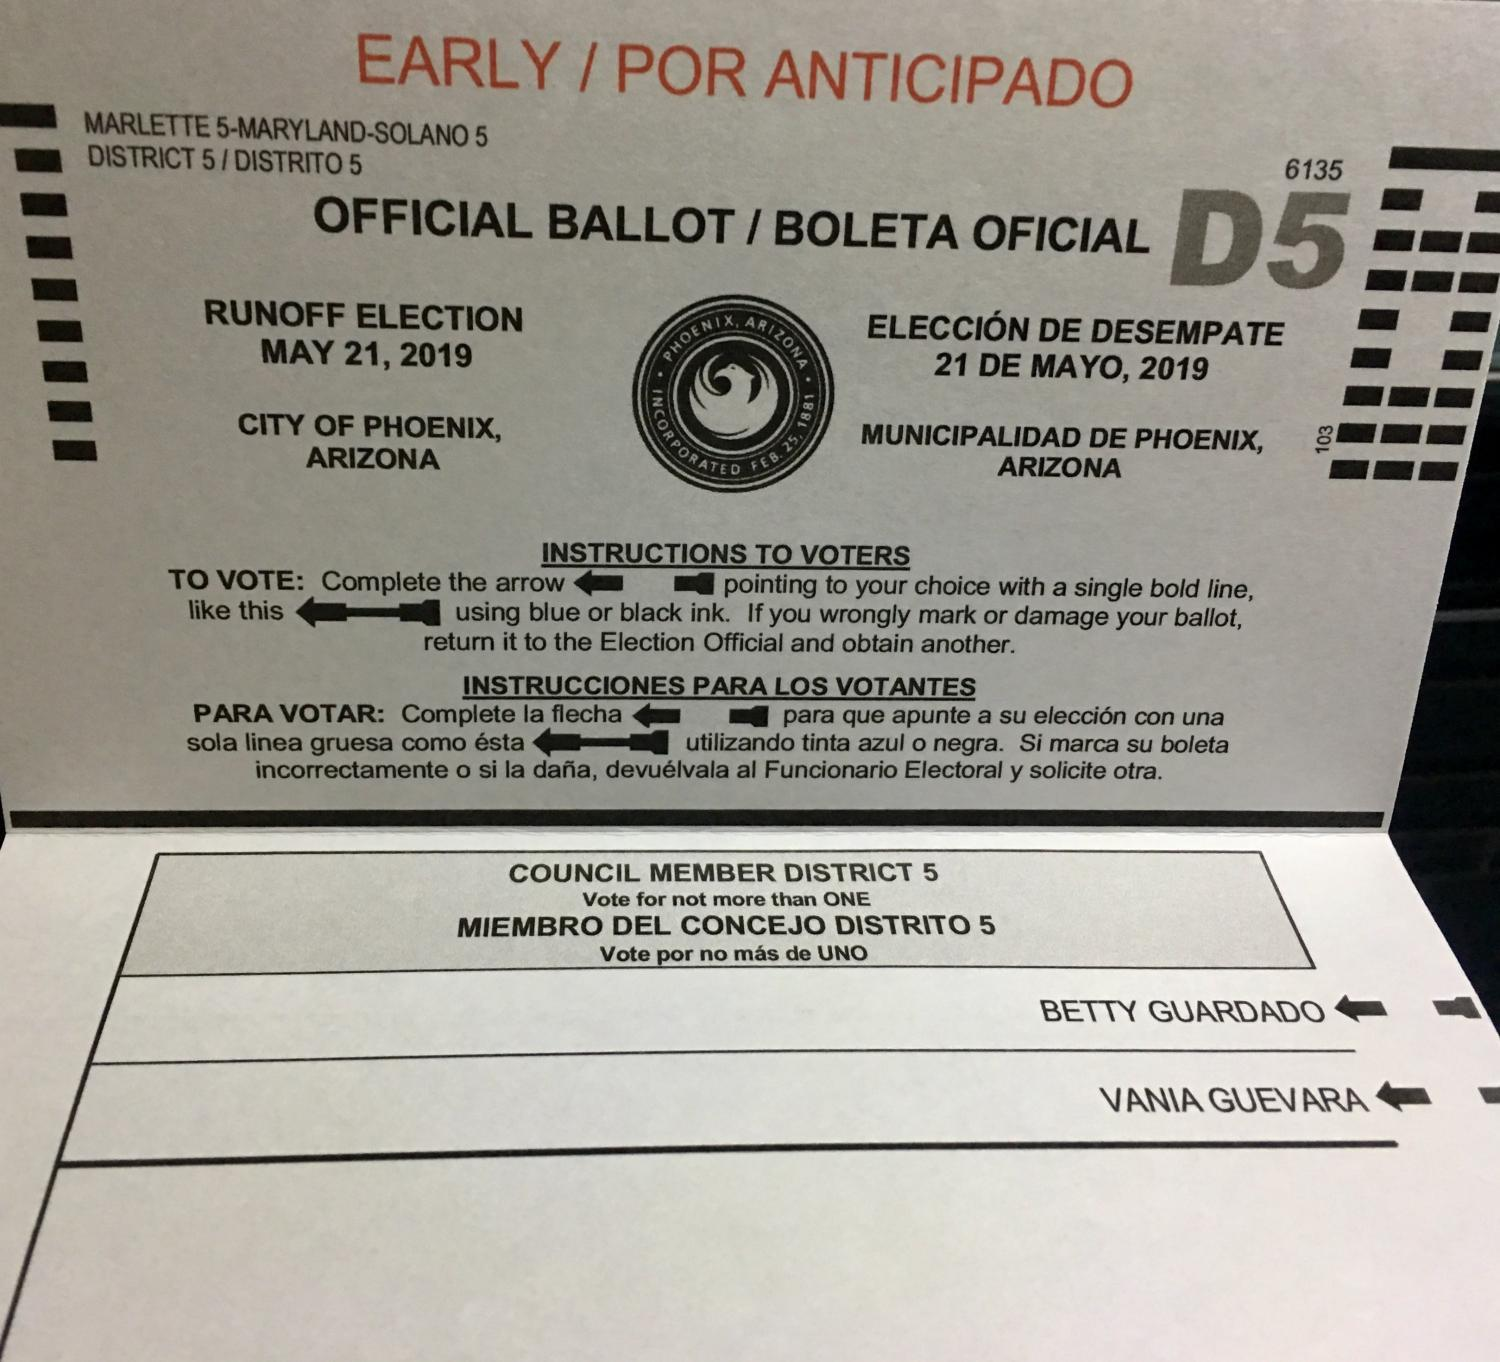 district 5 ballot with candidate names